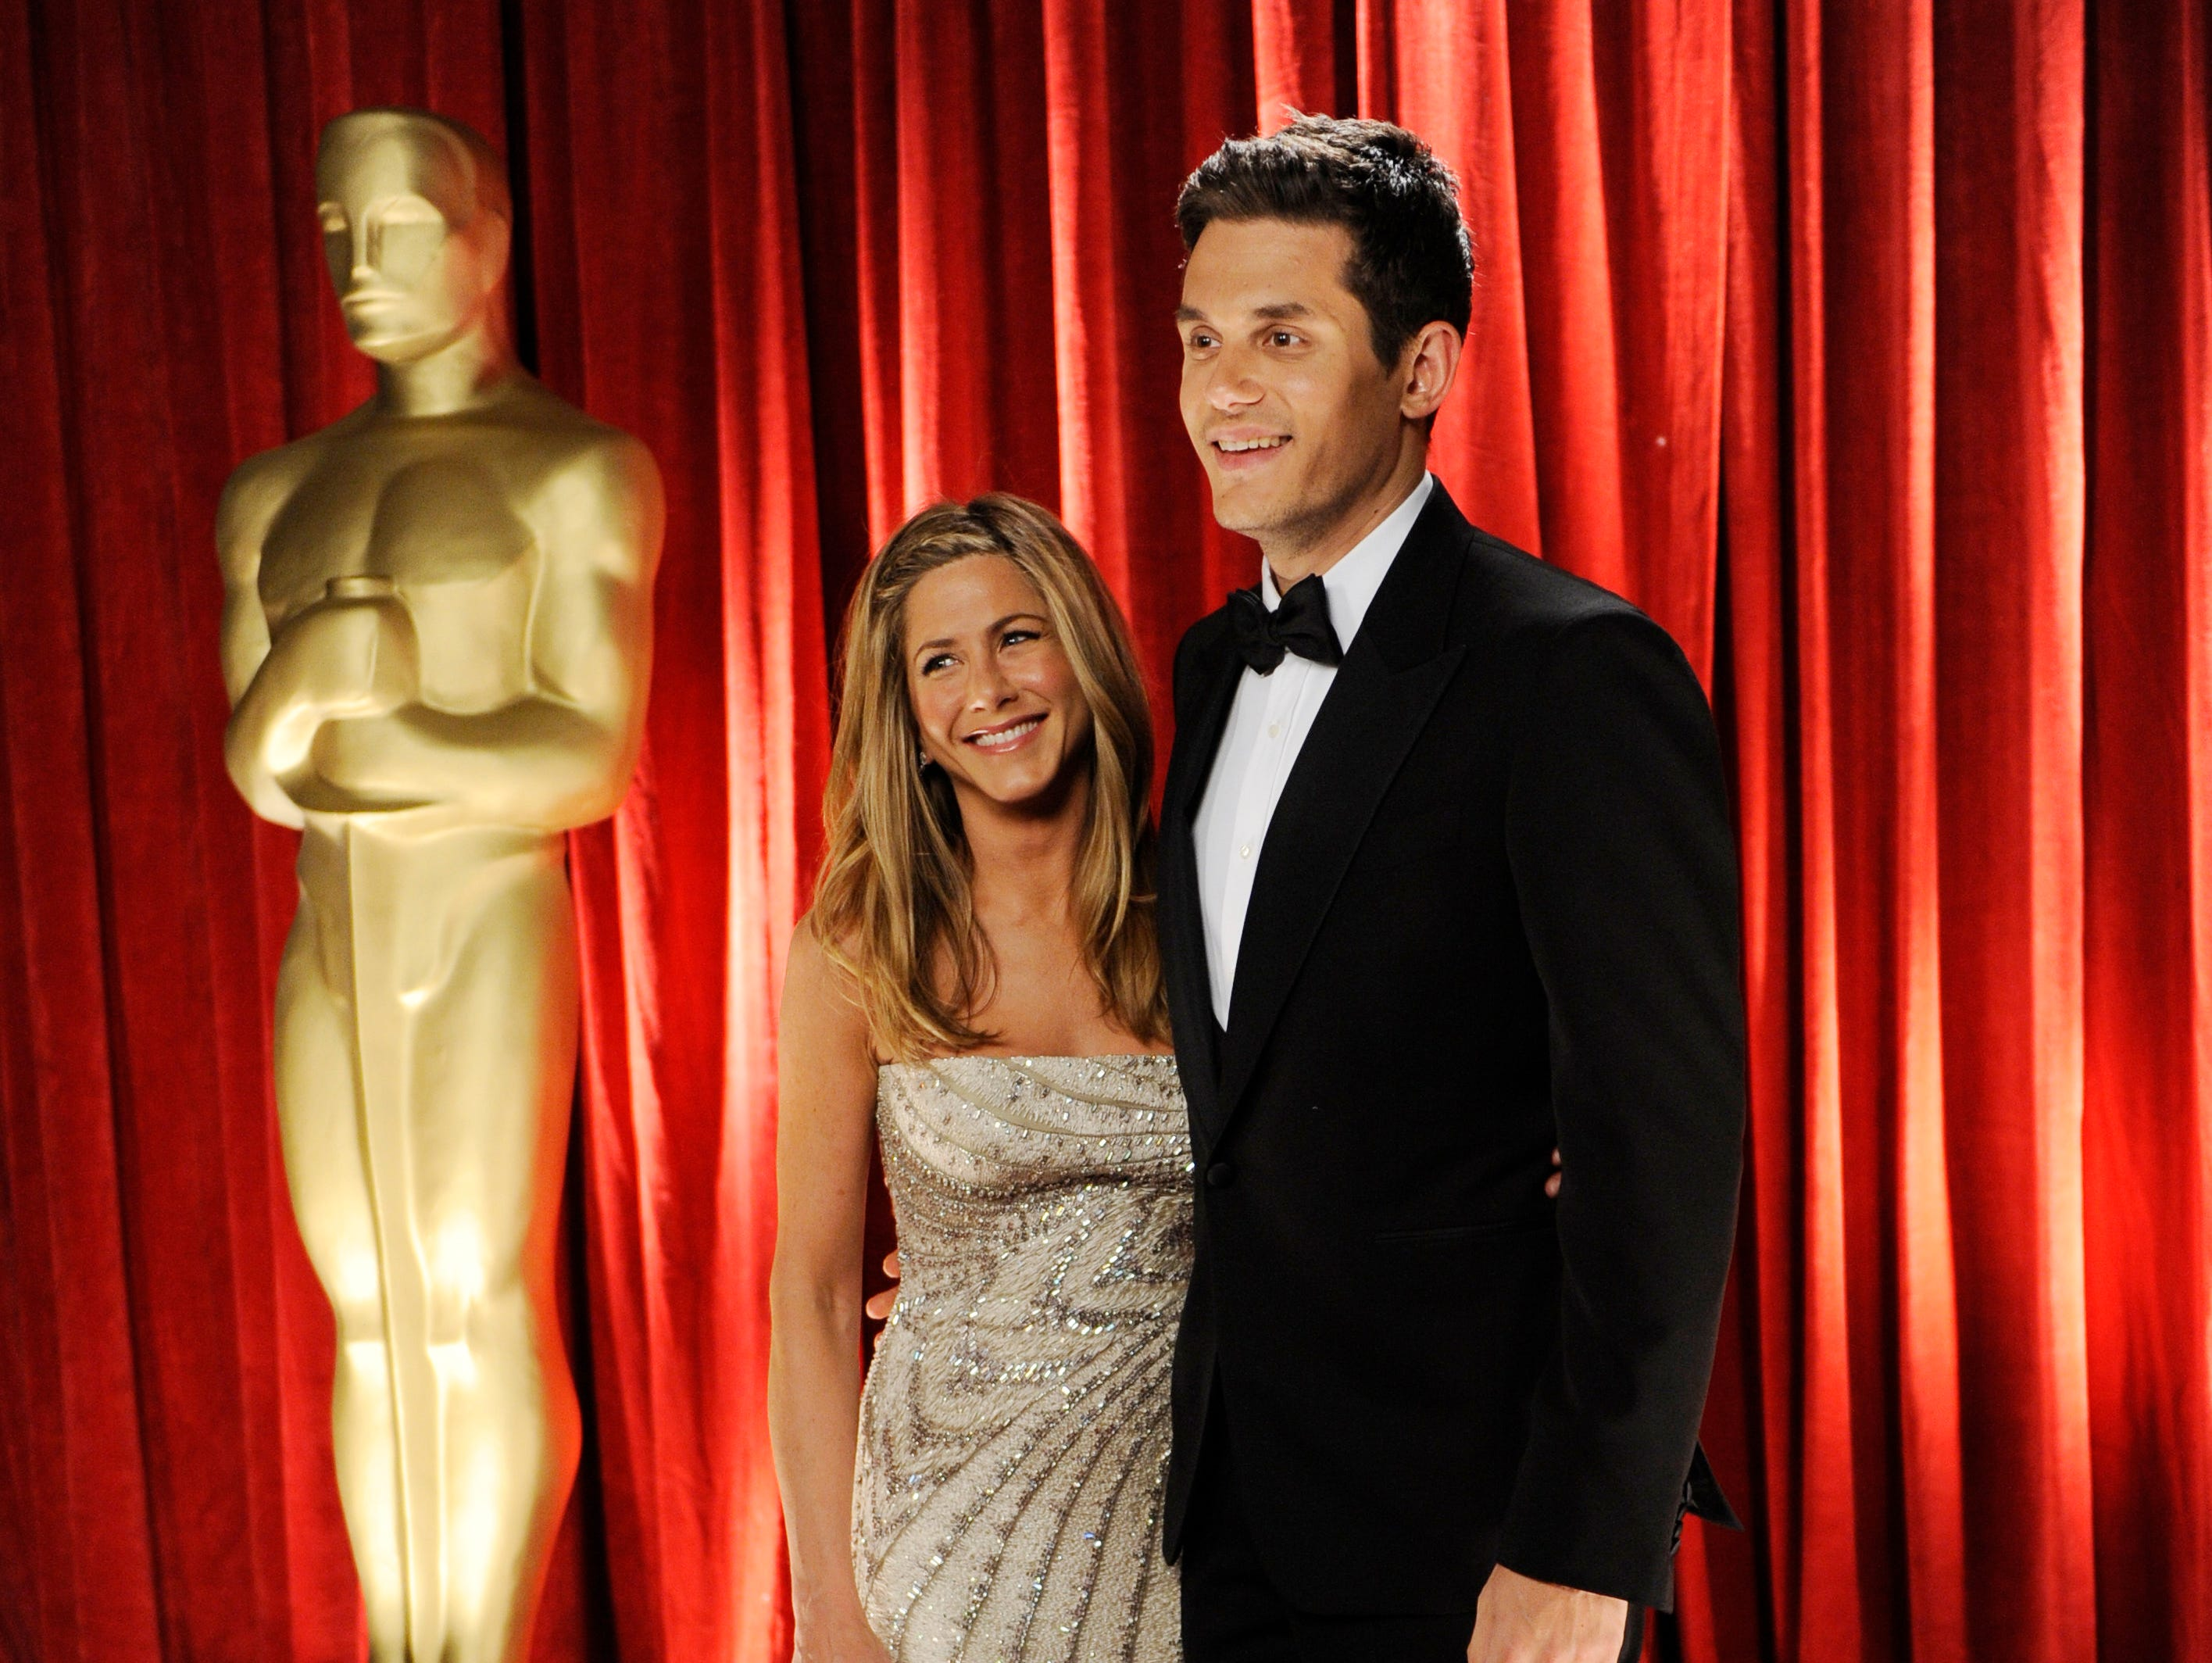 She dated singer John Mayer, nine years her junior, for about a year starting in 2008. They couple hit the 2009 Oscars together.